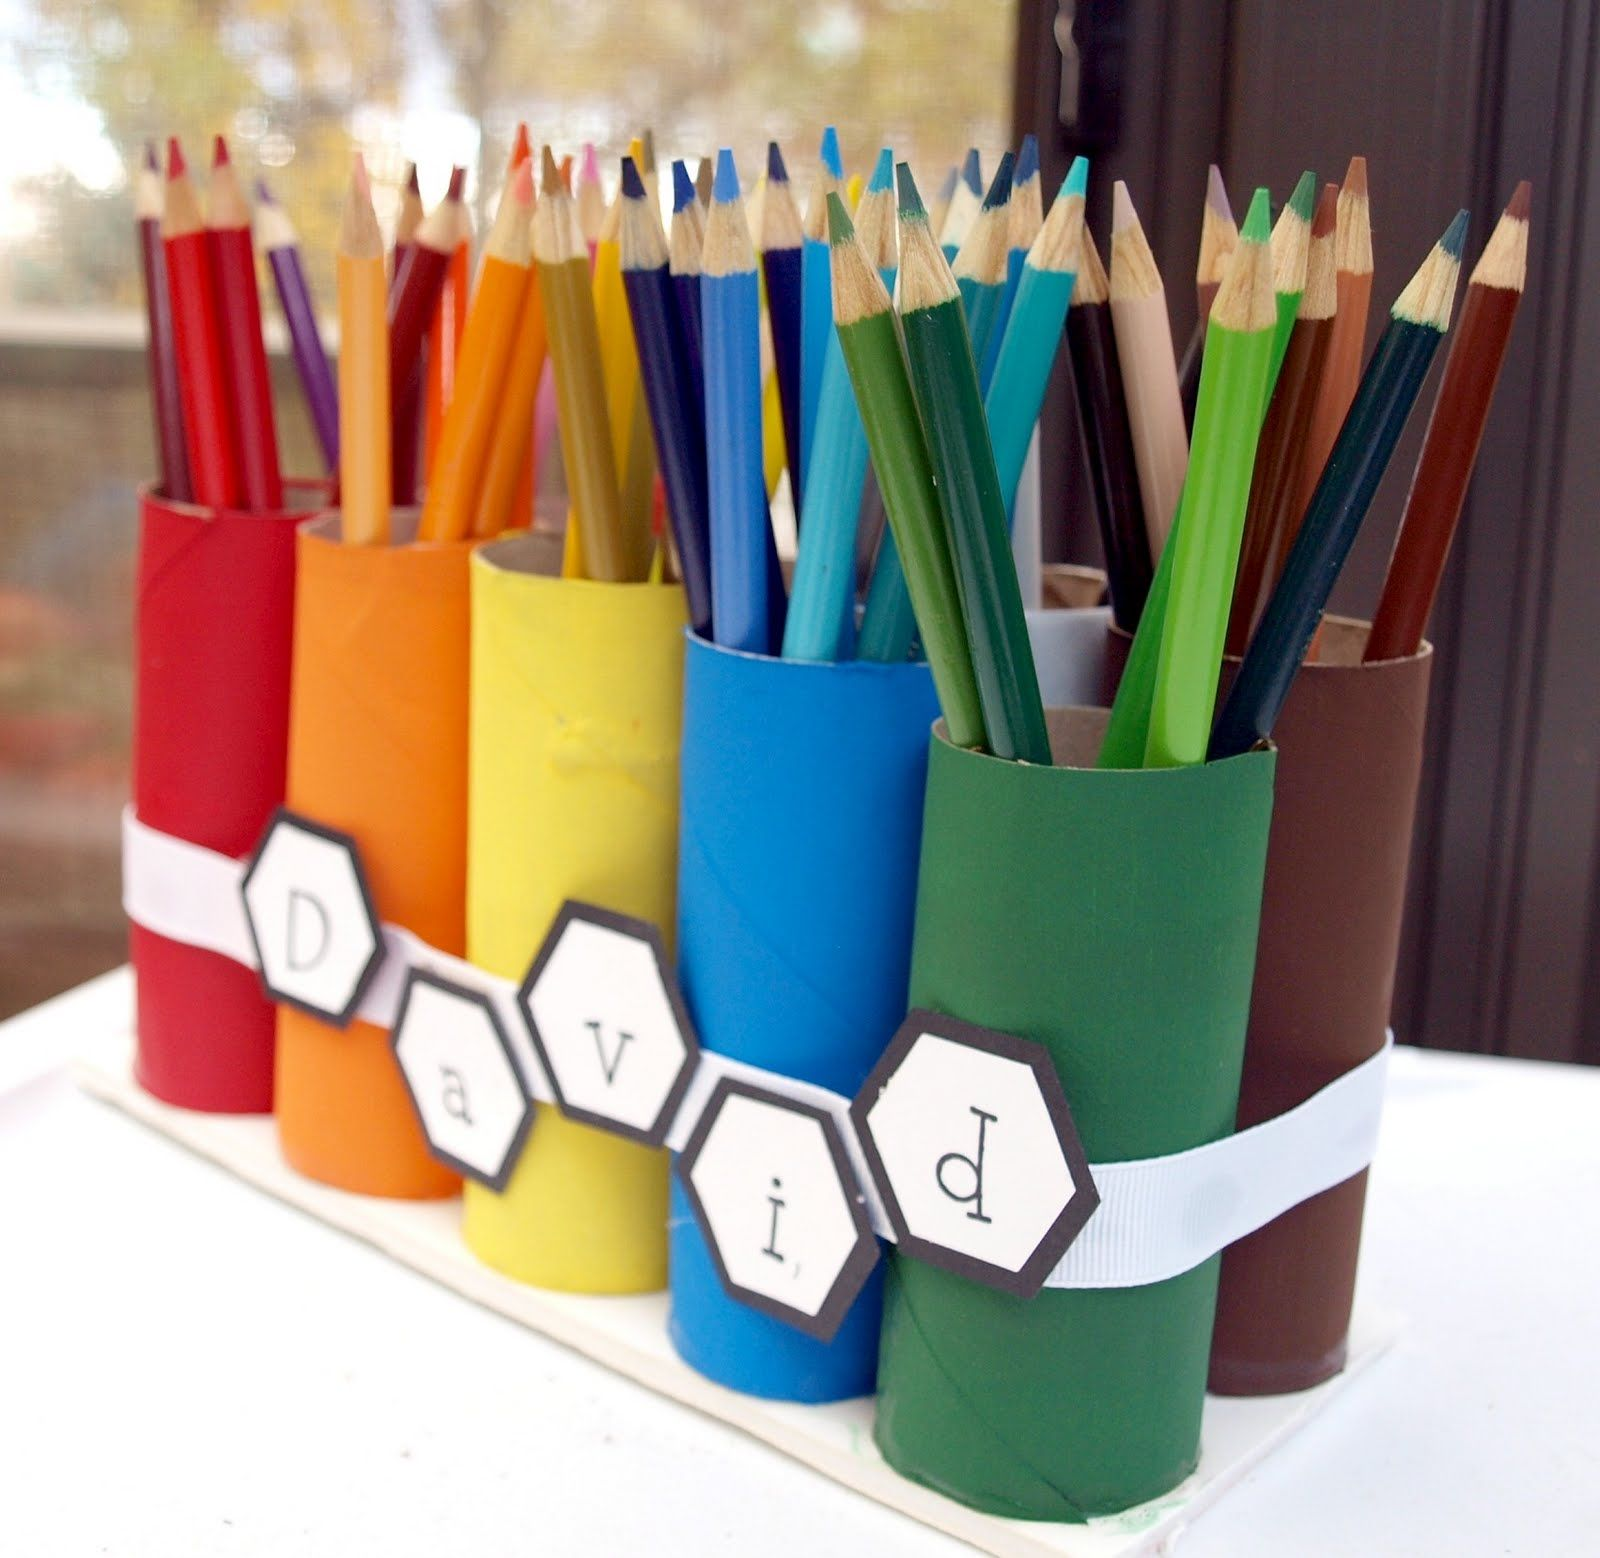 Pencil crayon organizer out of toilet paper rolls would be cute pencil crayon organizer out of toilet paper rolls would be cute for pens jeuxipadfo Image collections